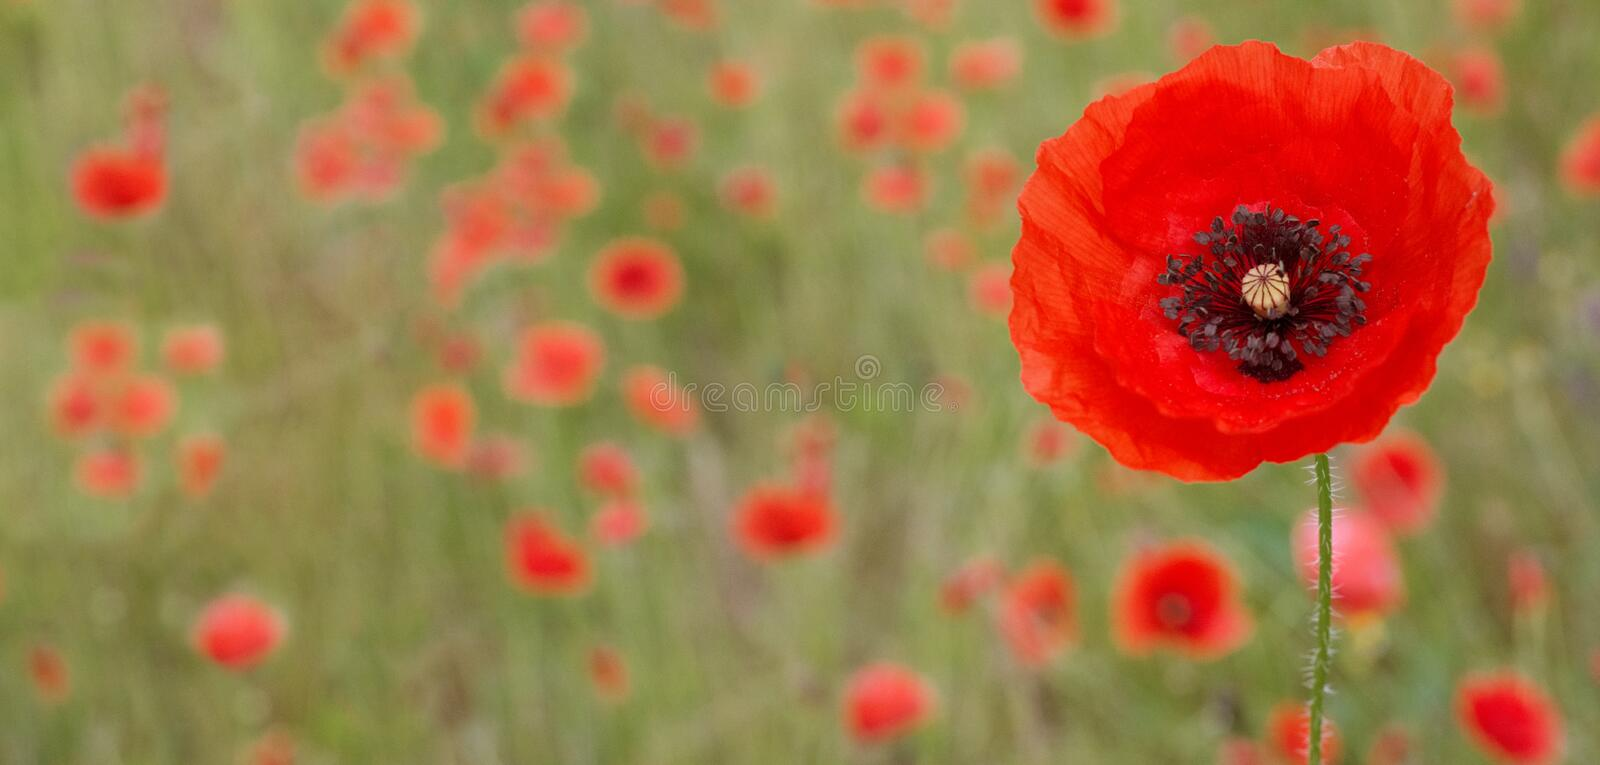 SPRING BACKGROUNDS. SINGLE RED POPPY  FLOWER ON NATURAL GREEN FIELD.  royalty free stock photos